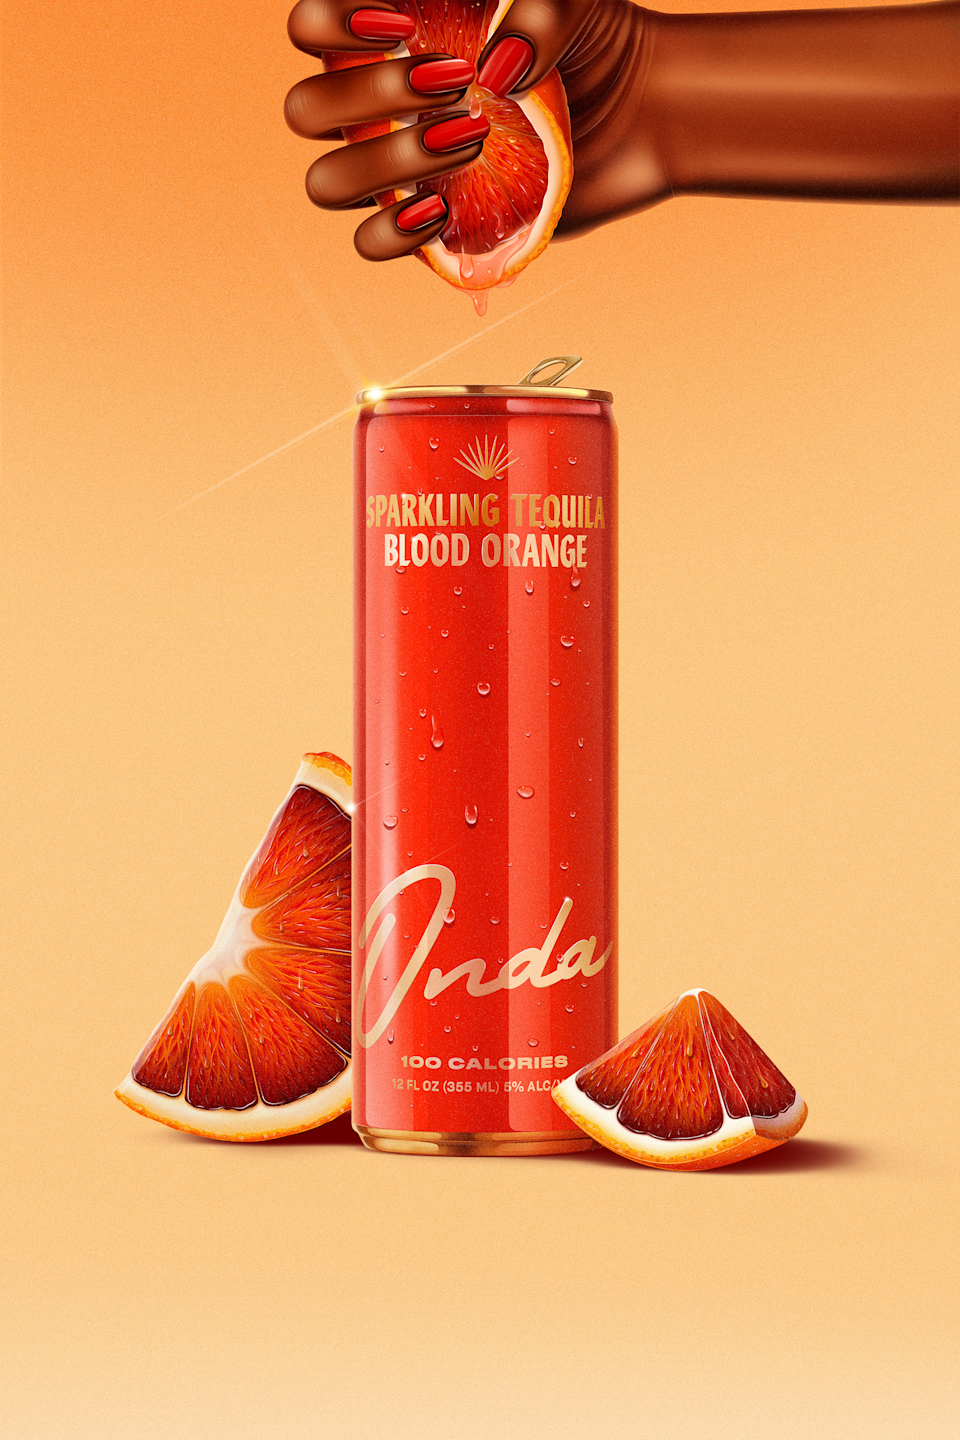 """<h2>Blood Orange Onda Tequila Seltzer</h2><br>""""I've loved Onda since the first time I tasted their original flavor line, but this time, they've truly outdone themselves. With the blood orange flavor, the Shay Mitchell-run tequila seltzer company created what can only be celebrated as the greatest blood orange drink on the market. Yes, I said it, <em>the best.</em> It's tart, not too sweet or overpowering, and pairs perfectly with tequila. They also did a very good job creating a flavor that tastes like an actual blood orange — a feat not many can claim. And for under $3 a can, catch me drinking these all summer long."""" <em>— Hannah Rimm, Associate Editor, Money Diaries</em><br><br><strong>Onda</strong> Blood Orange Sparkling Tequila 24-pack, $, available at <a href=""""https://go.skimresources.com/?id=30283X879131&url=https%3A%2F%2Fdrinkonda.com%2Fcollections%2Fsparkling-tequila"""" rel=""""nofollow noopener"""" target=""""_blank"""" data-ylk=""""slk:Onda"""" class=""""link rapid-noclick-resp"""">Onda</a>"""